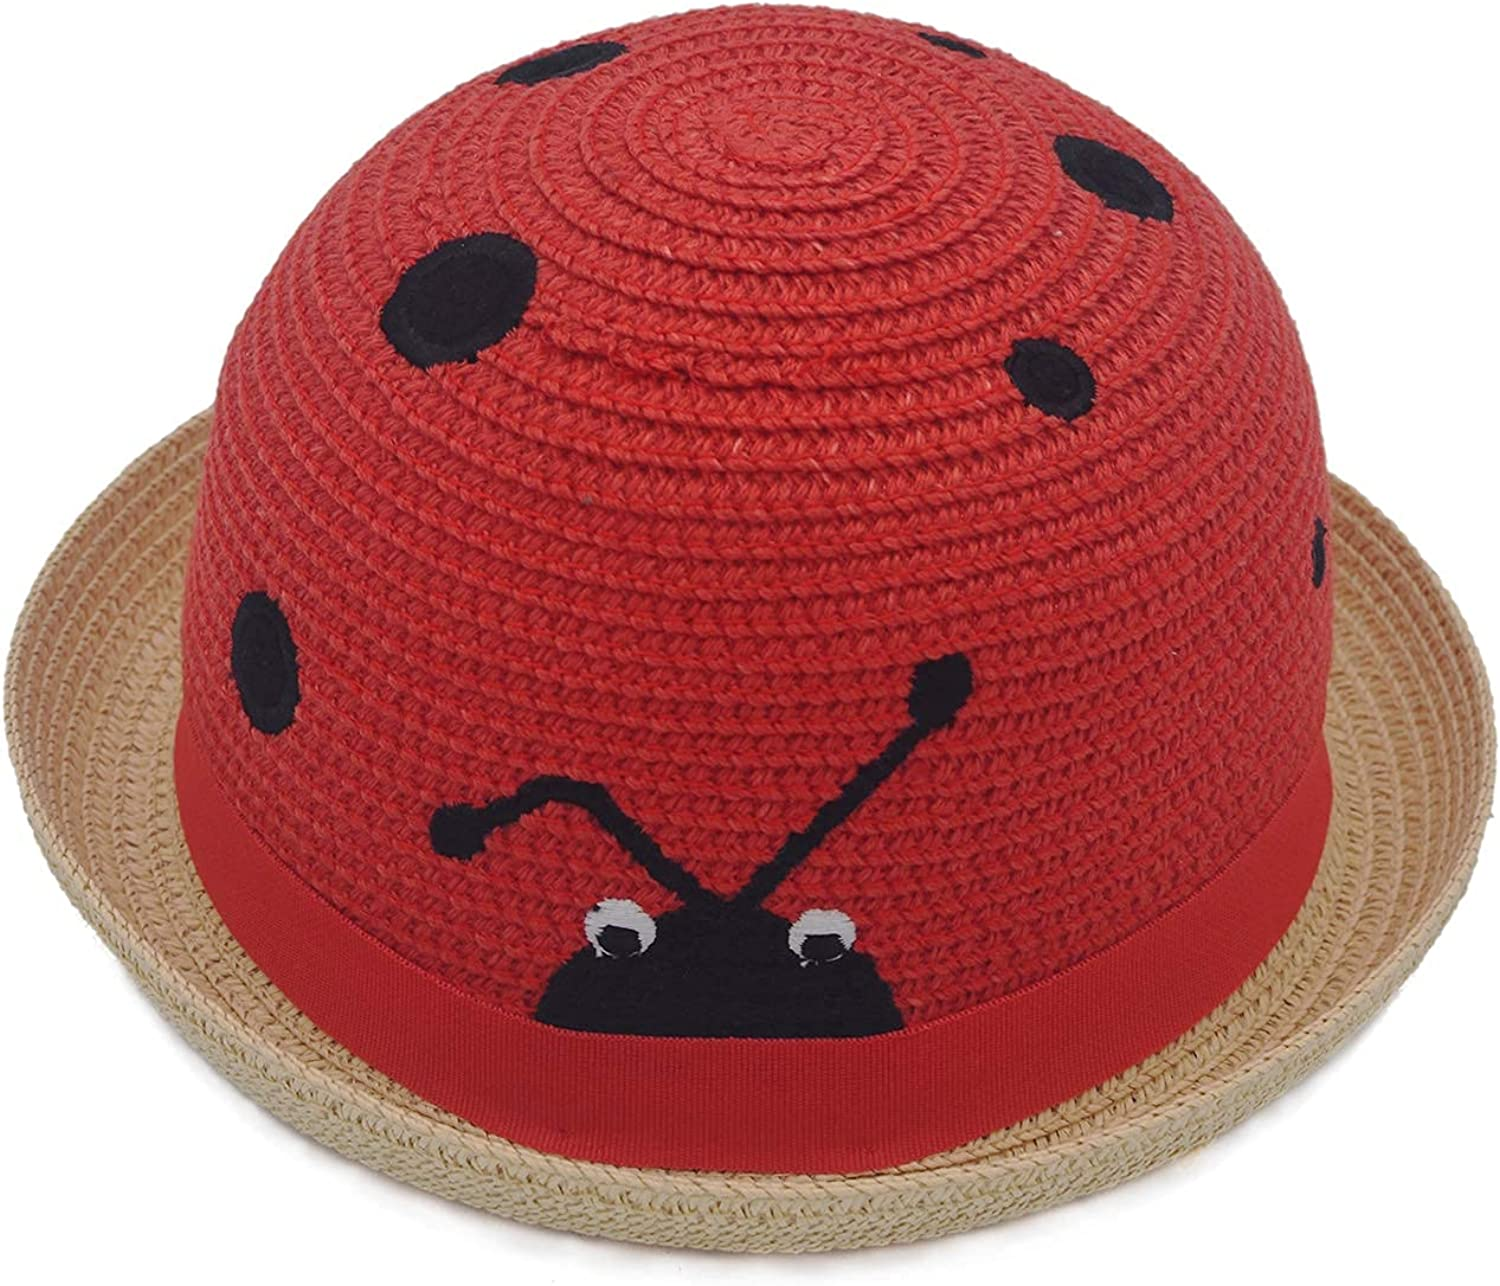 Toddler Boys Girls Funny Novelty Party Straw Hats Kids Cute Insect Designed Outdoor Sun Protection Beach Cap Colorful: Clothing